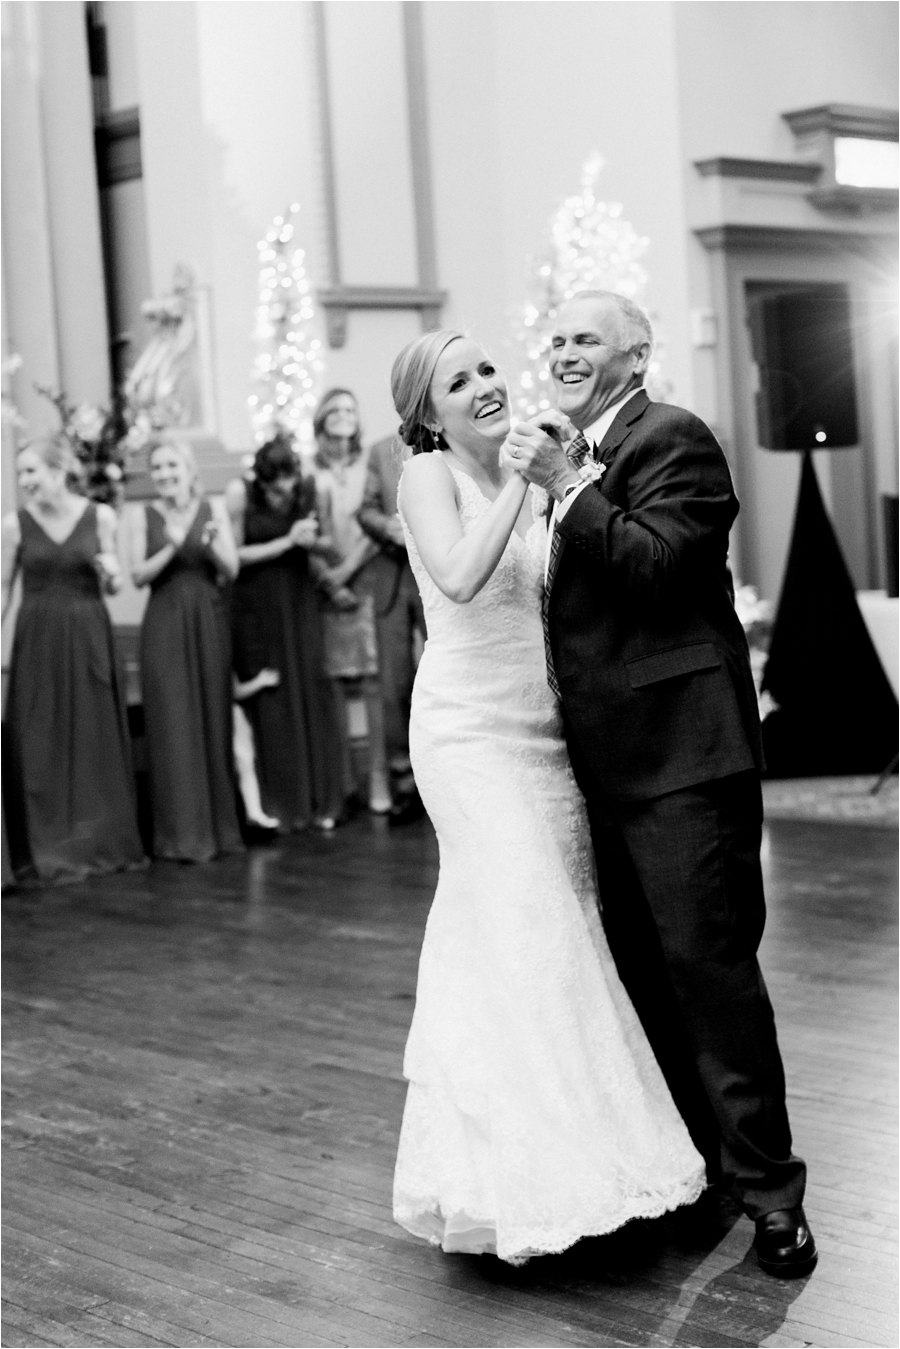 richmond winter wedding at hotel john marshall by charlottesville wedding photographer, amy nicole photography_0090